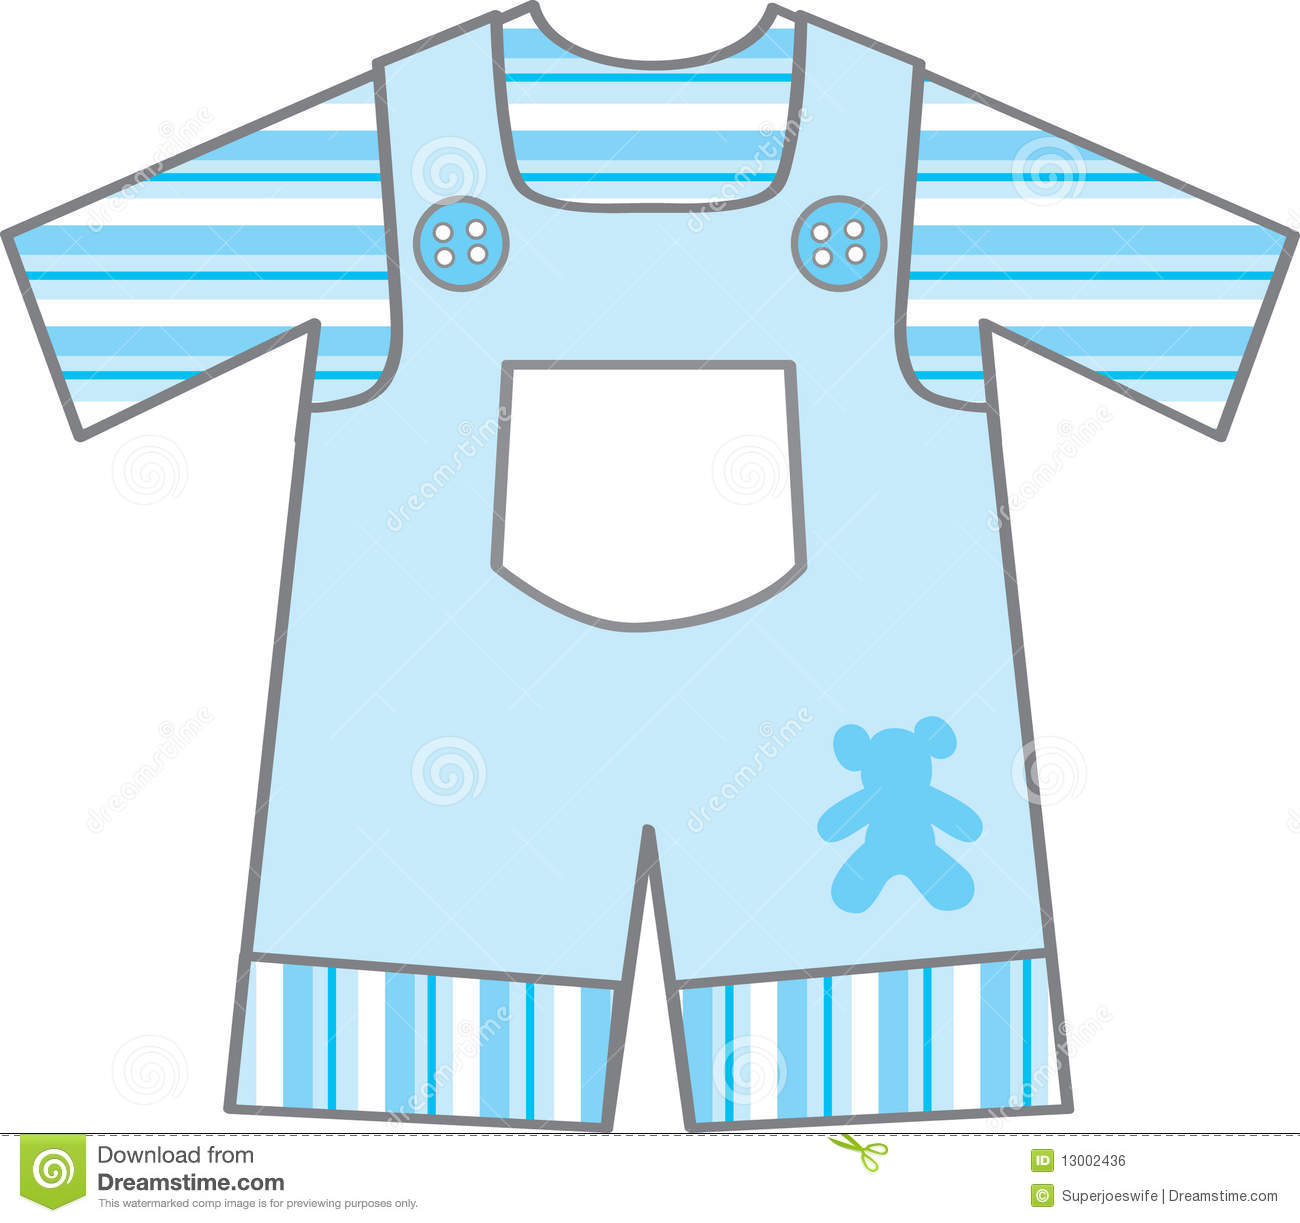 hight resolution of baby boy outfit stock illustrations 445 baby boy outfit stock illustrations vectors clipart dreamstime